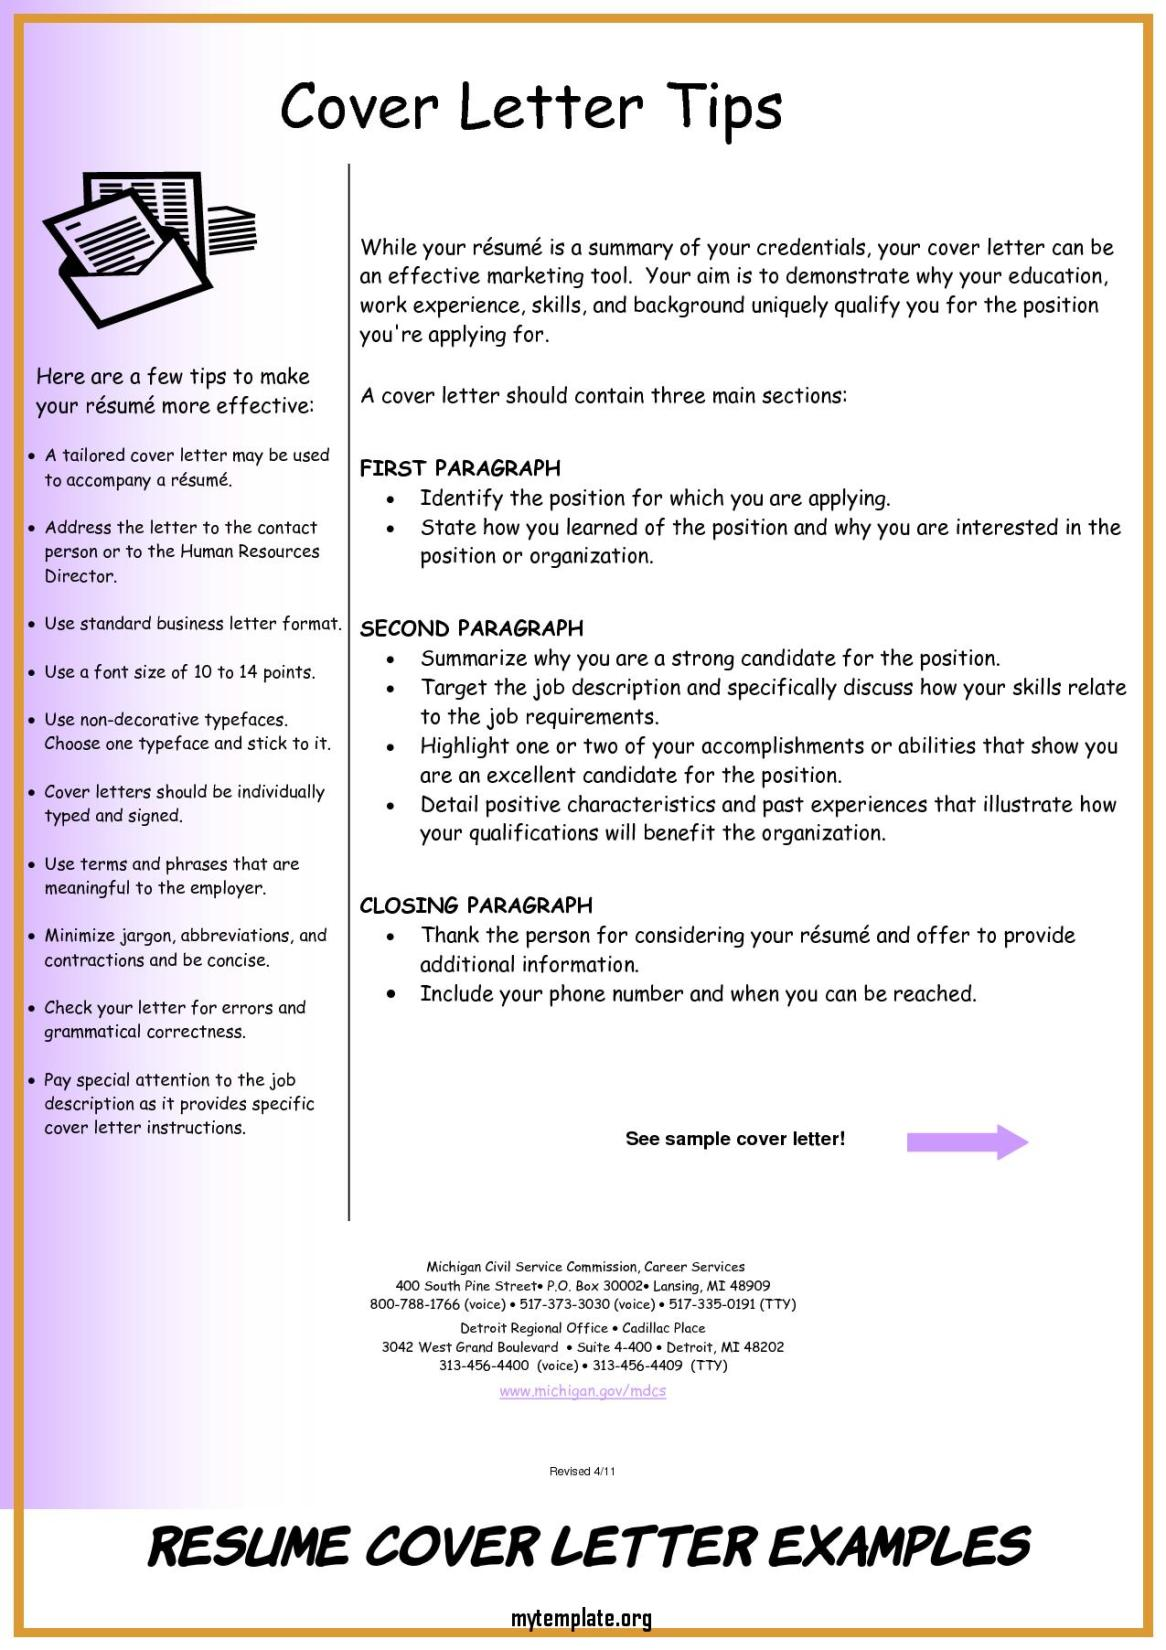 8 Resume Cover Letter Examples Free Templates